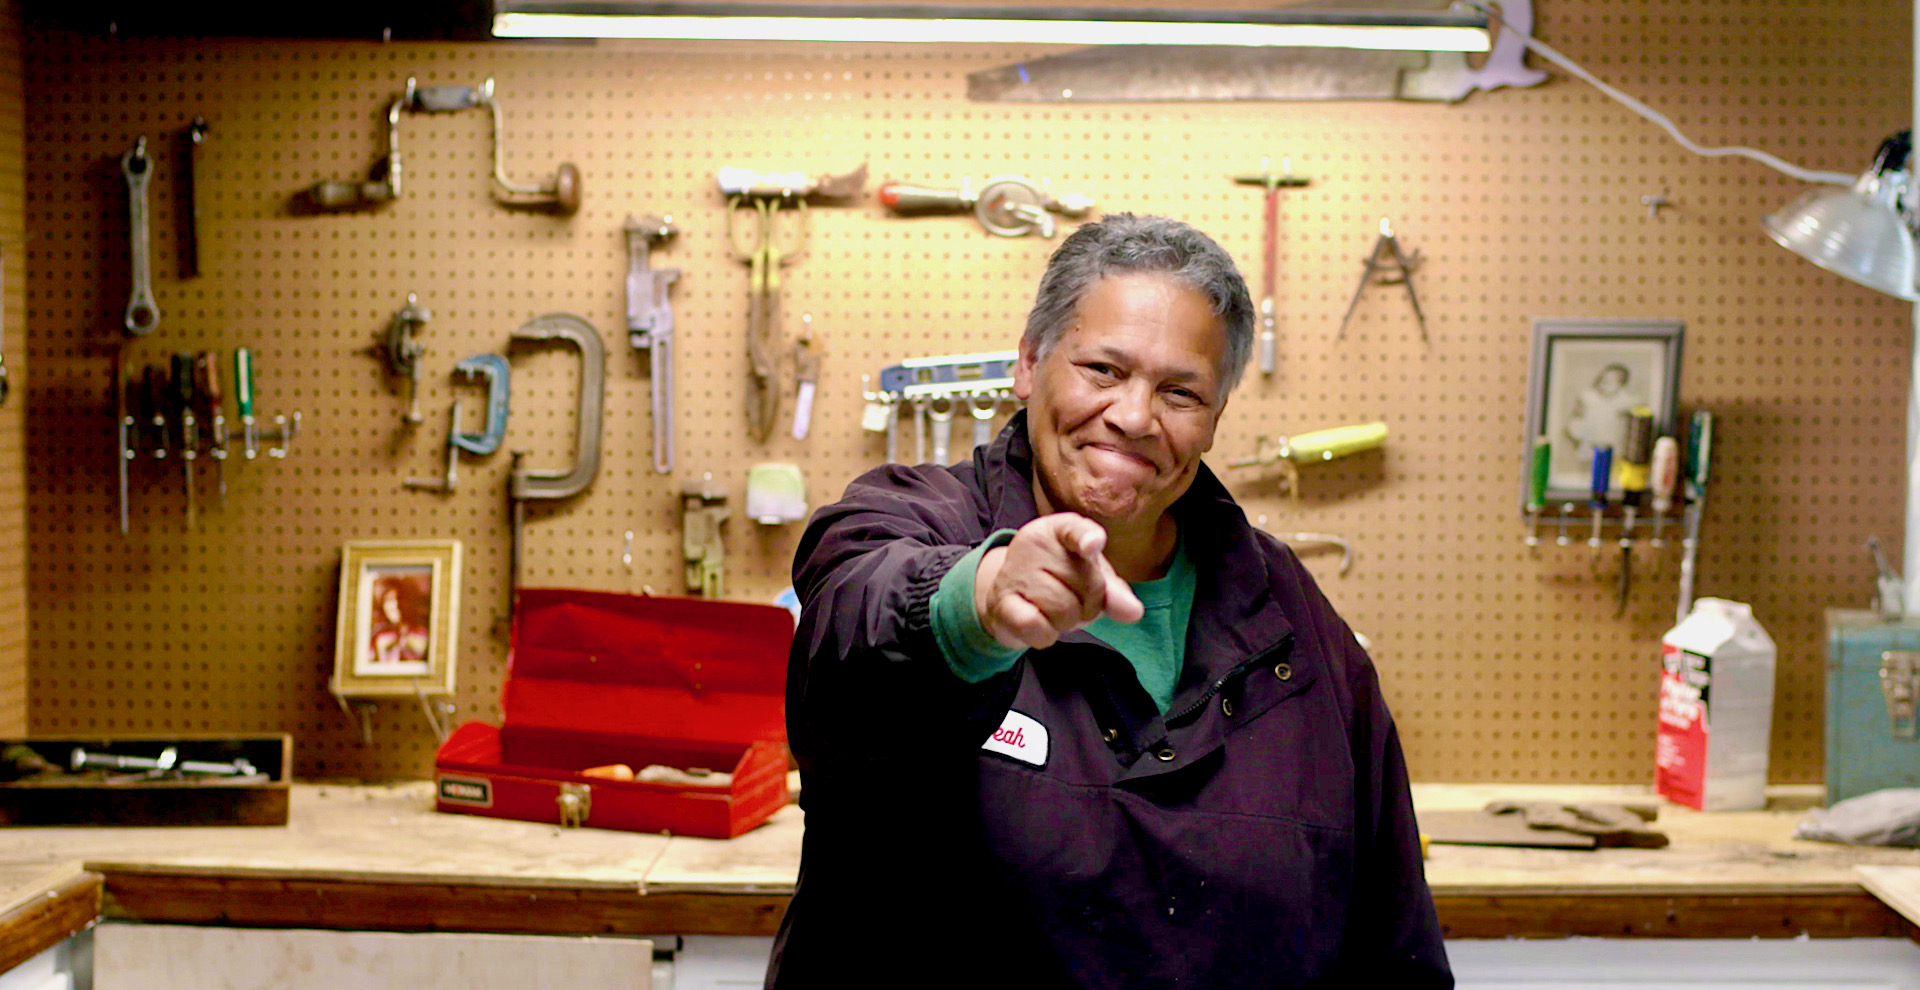 See Jane Drill: Opening doors and changing lives